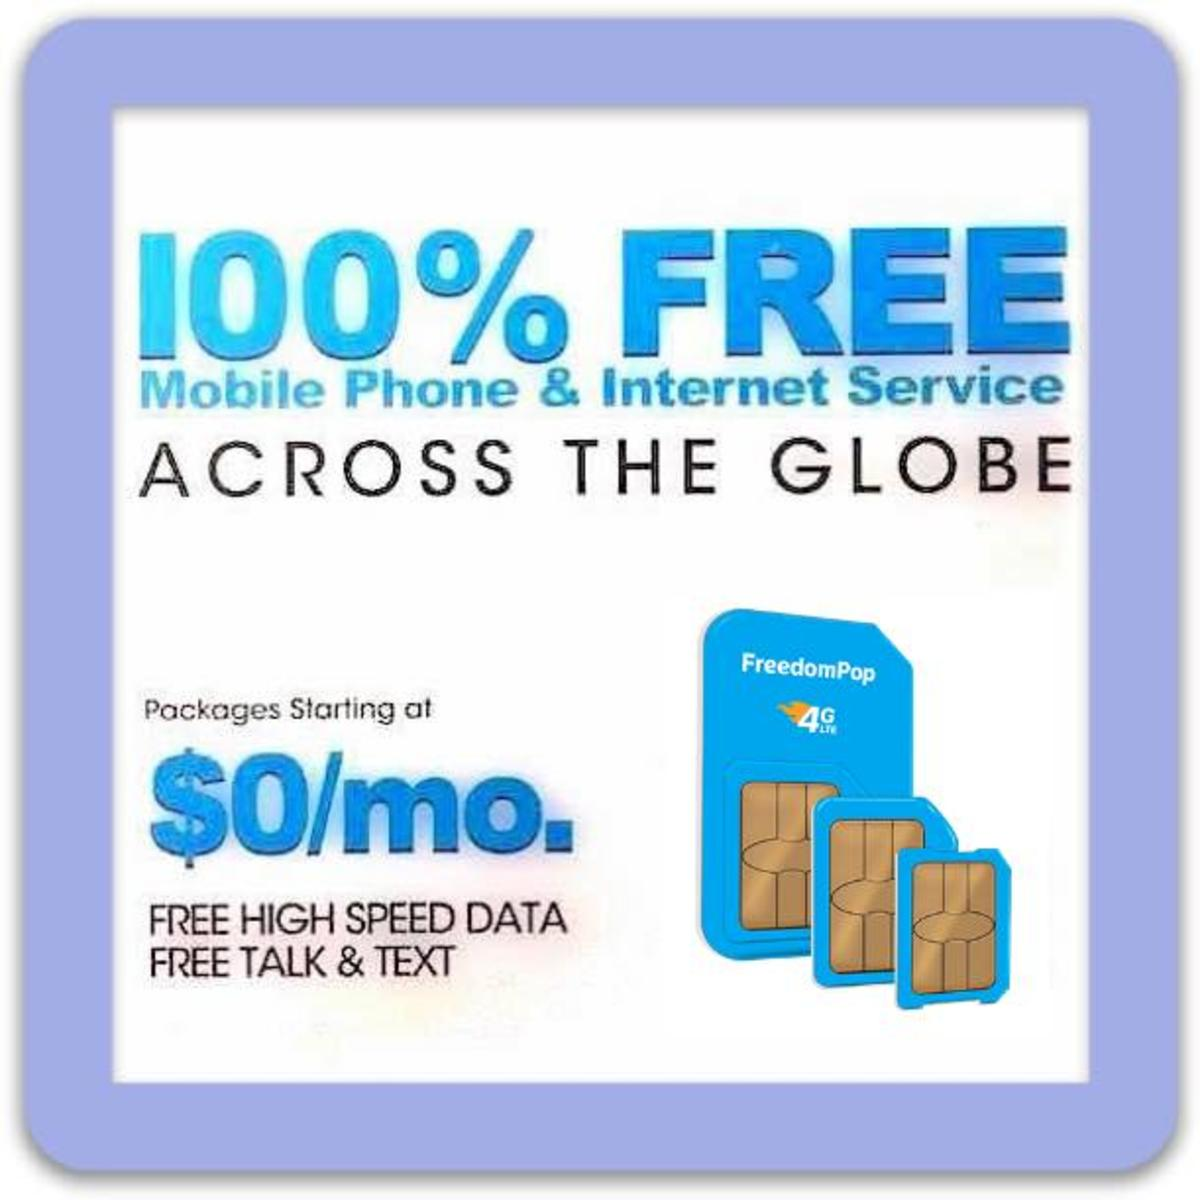 Detailed Review of a Free Mobile Phone Plan: FreedomPop